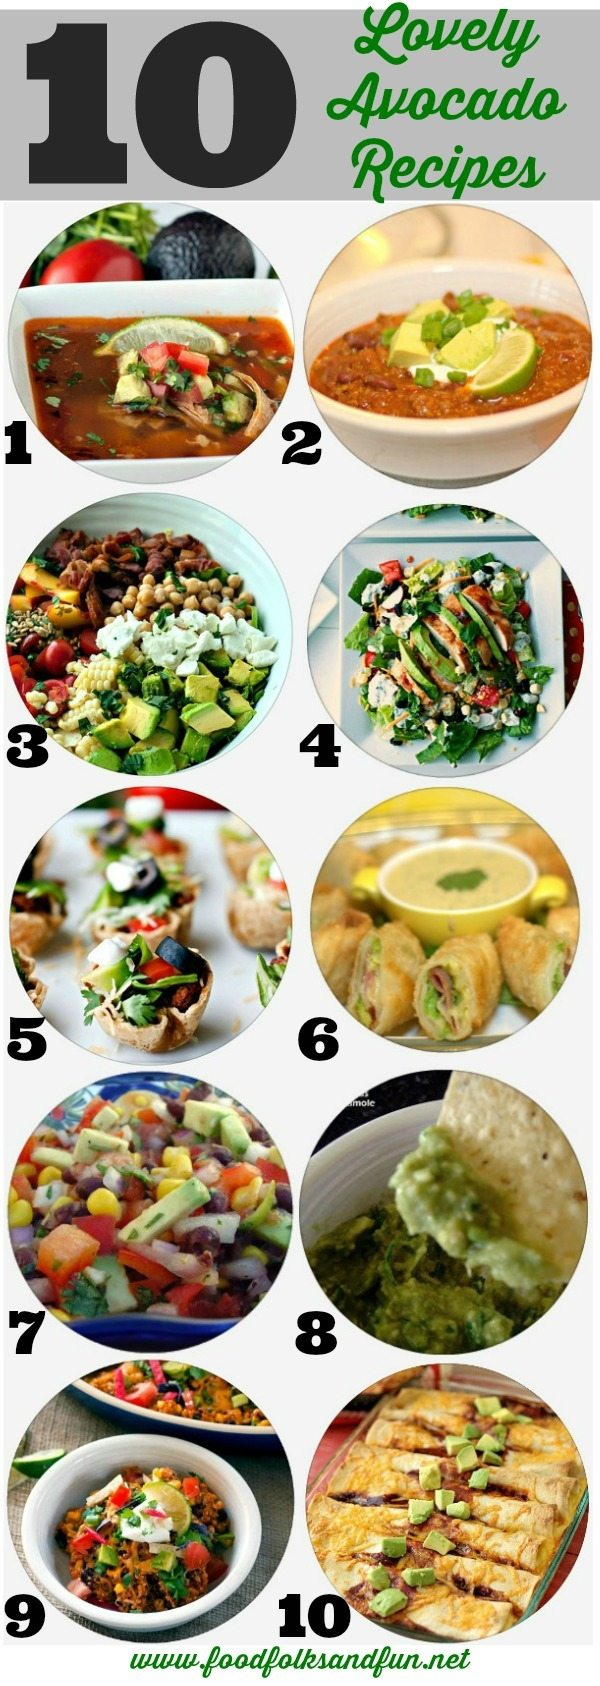 10 Lovely Avocado Recipes + a $50 GC GIVEAWAY! #LoveOneToday